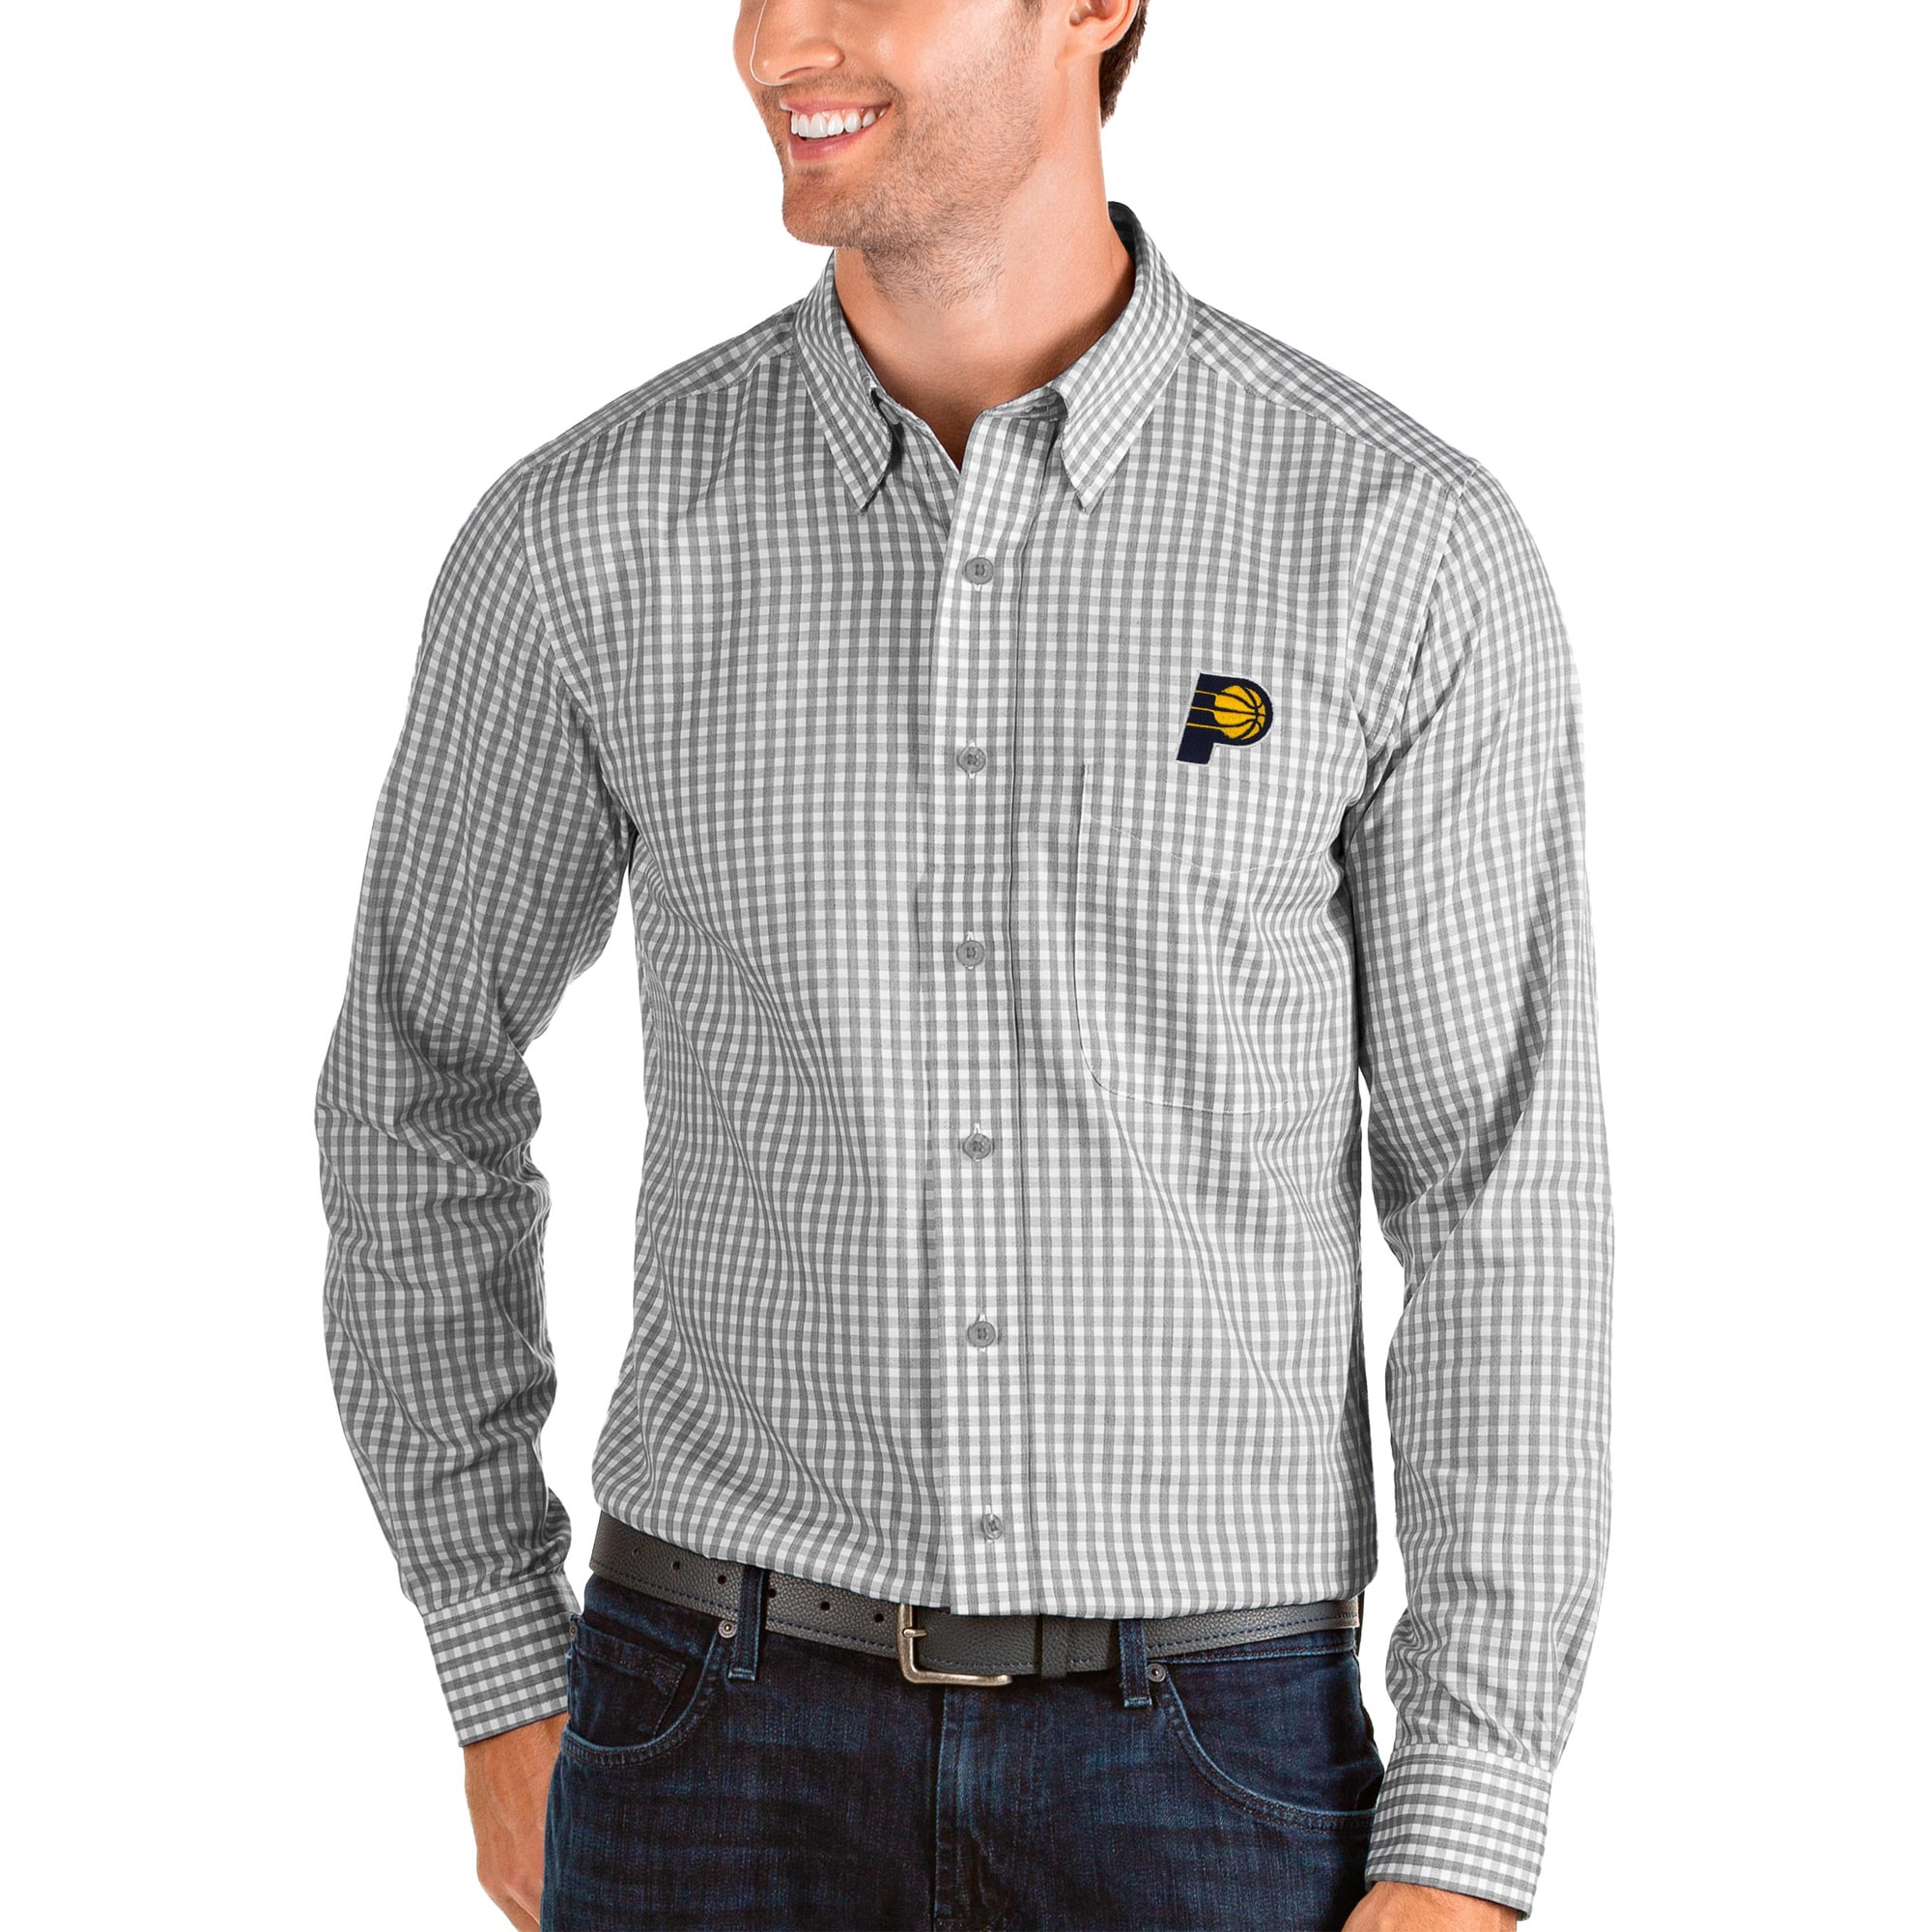 Indiana Pacers Antigua Structure Long Sleeve Button-Up Shirt - Charcoal/White